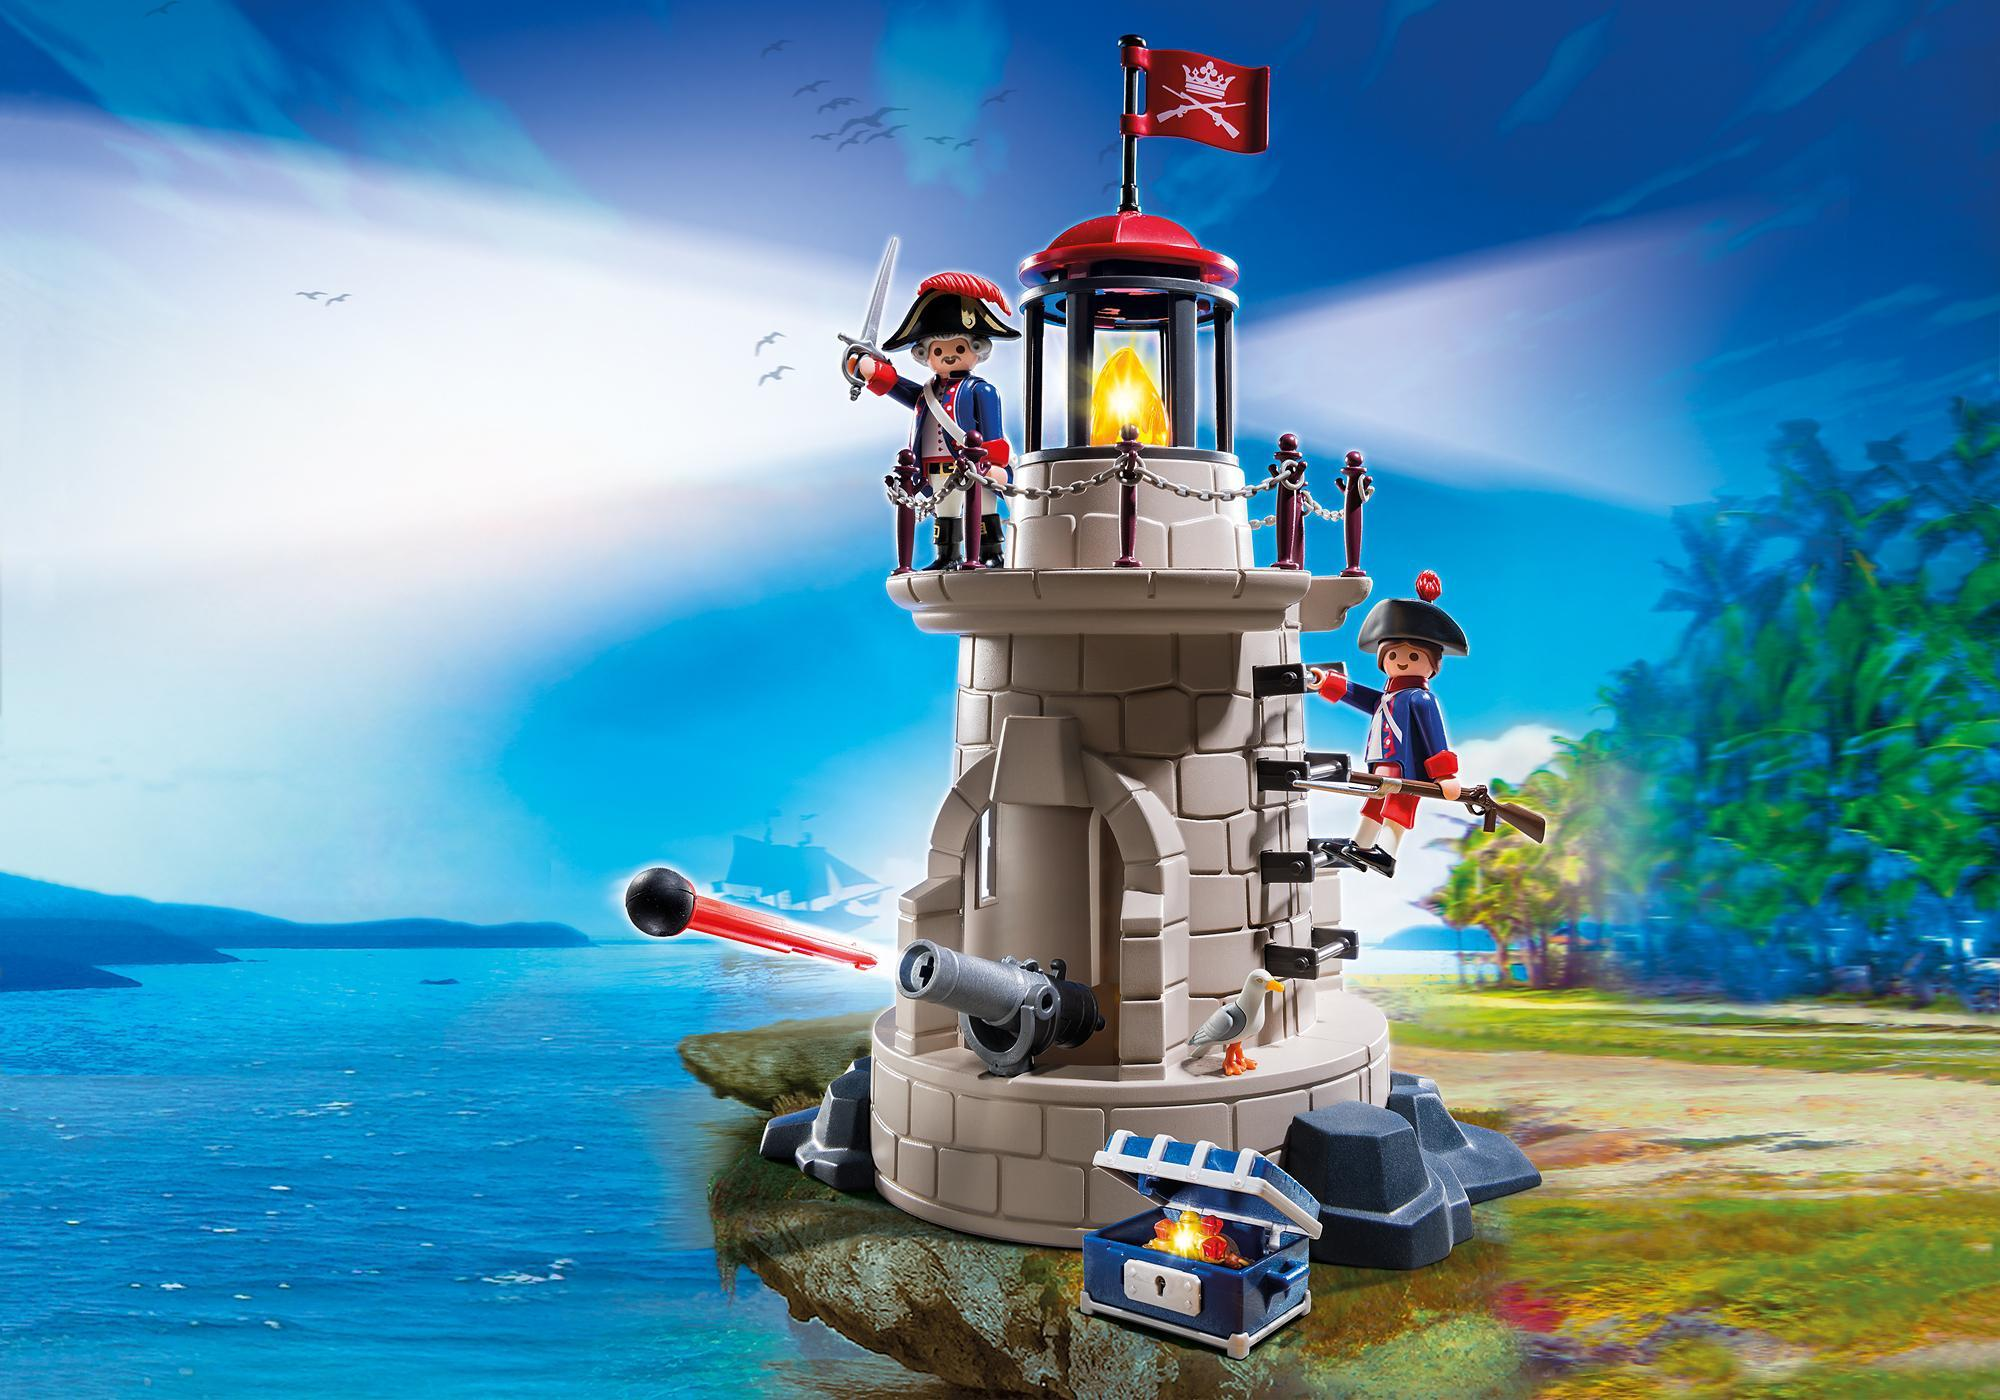 http://media.playmobil.com/i/playmobil/6680_product_detail/Soldiers' Lookout with Beacon